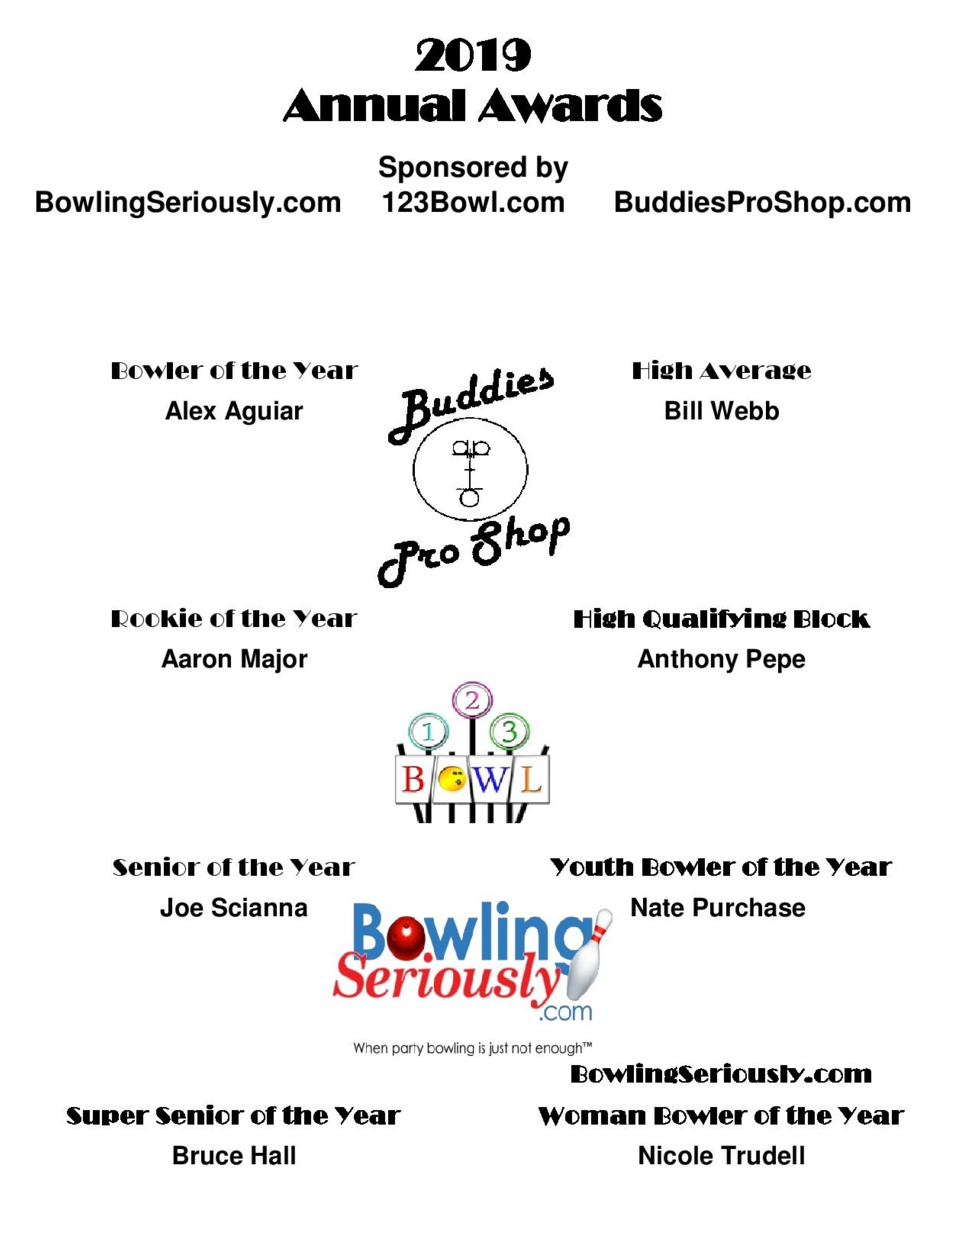 2019 BuddiesProShop.com and BowlingSeriously.com Annual Award Winners